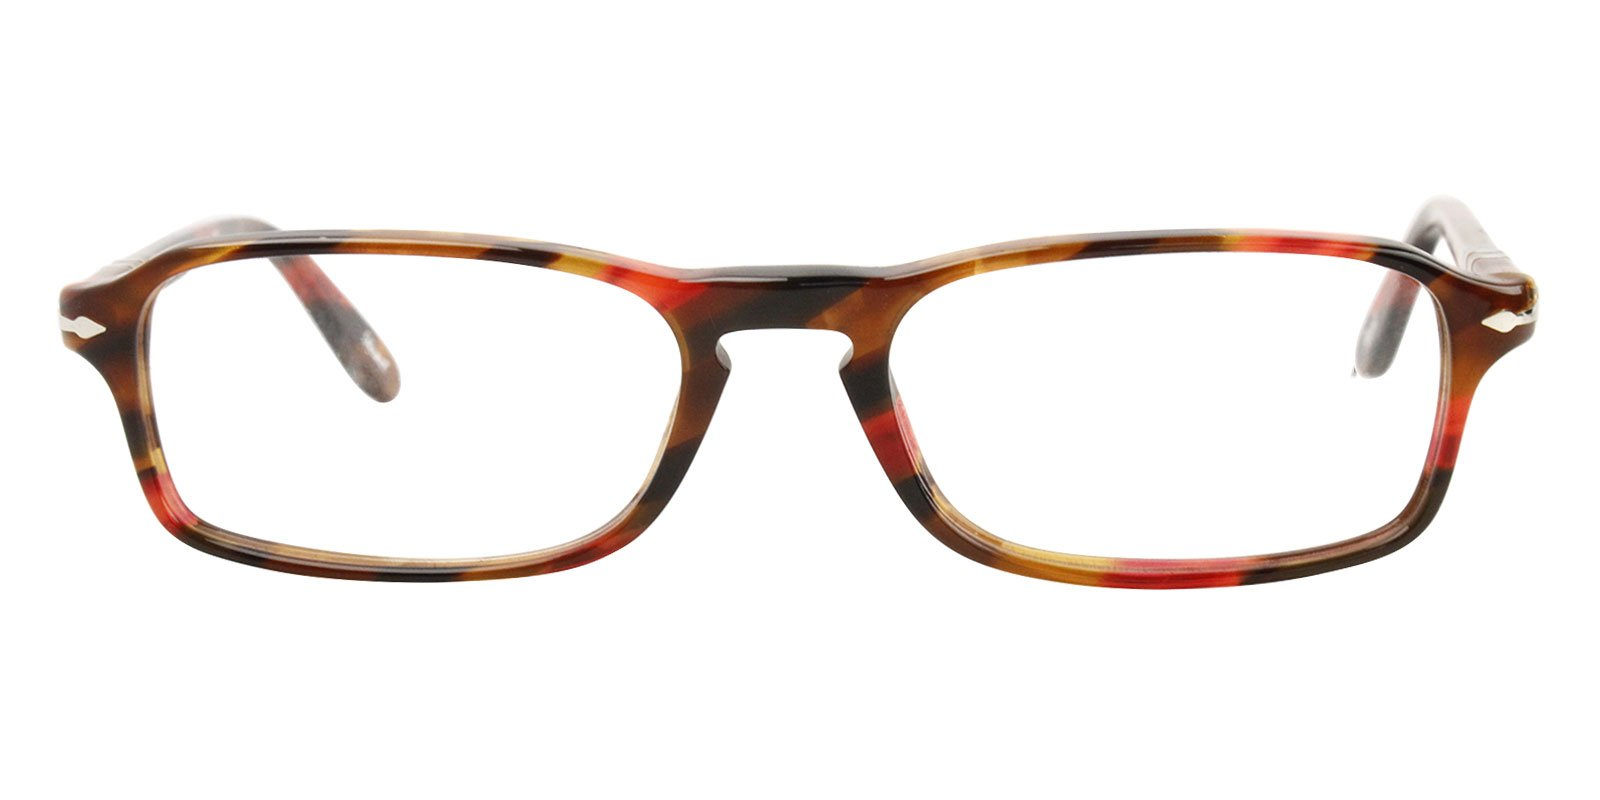 Persol - PO 3035V Red/Orange Rectangular Women Eyeglasses - 51mm-Eyeglasses-Designer Eyes